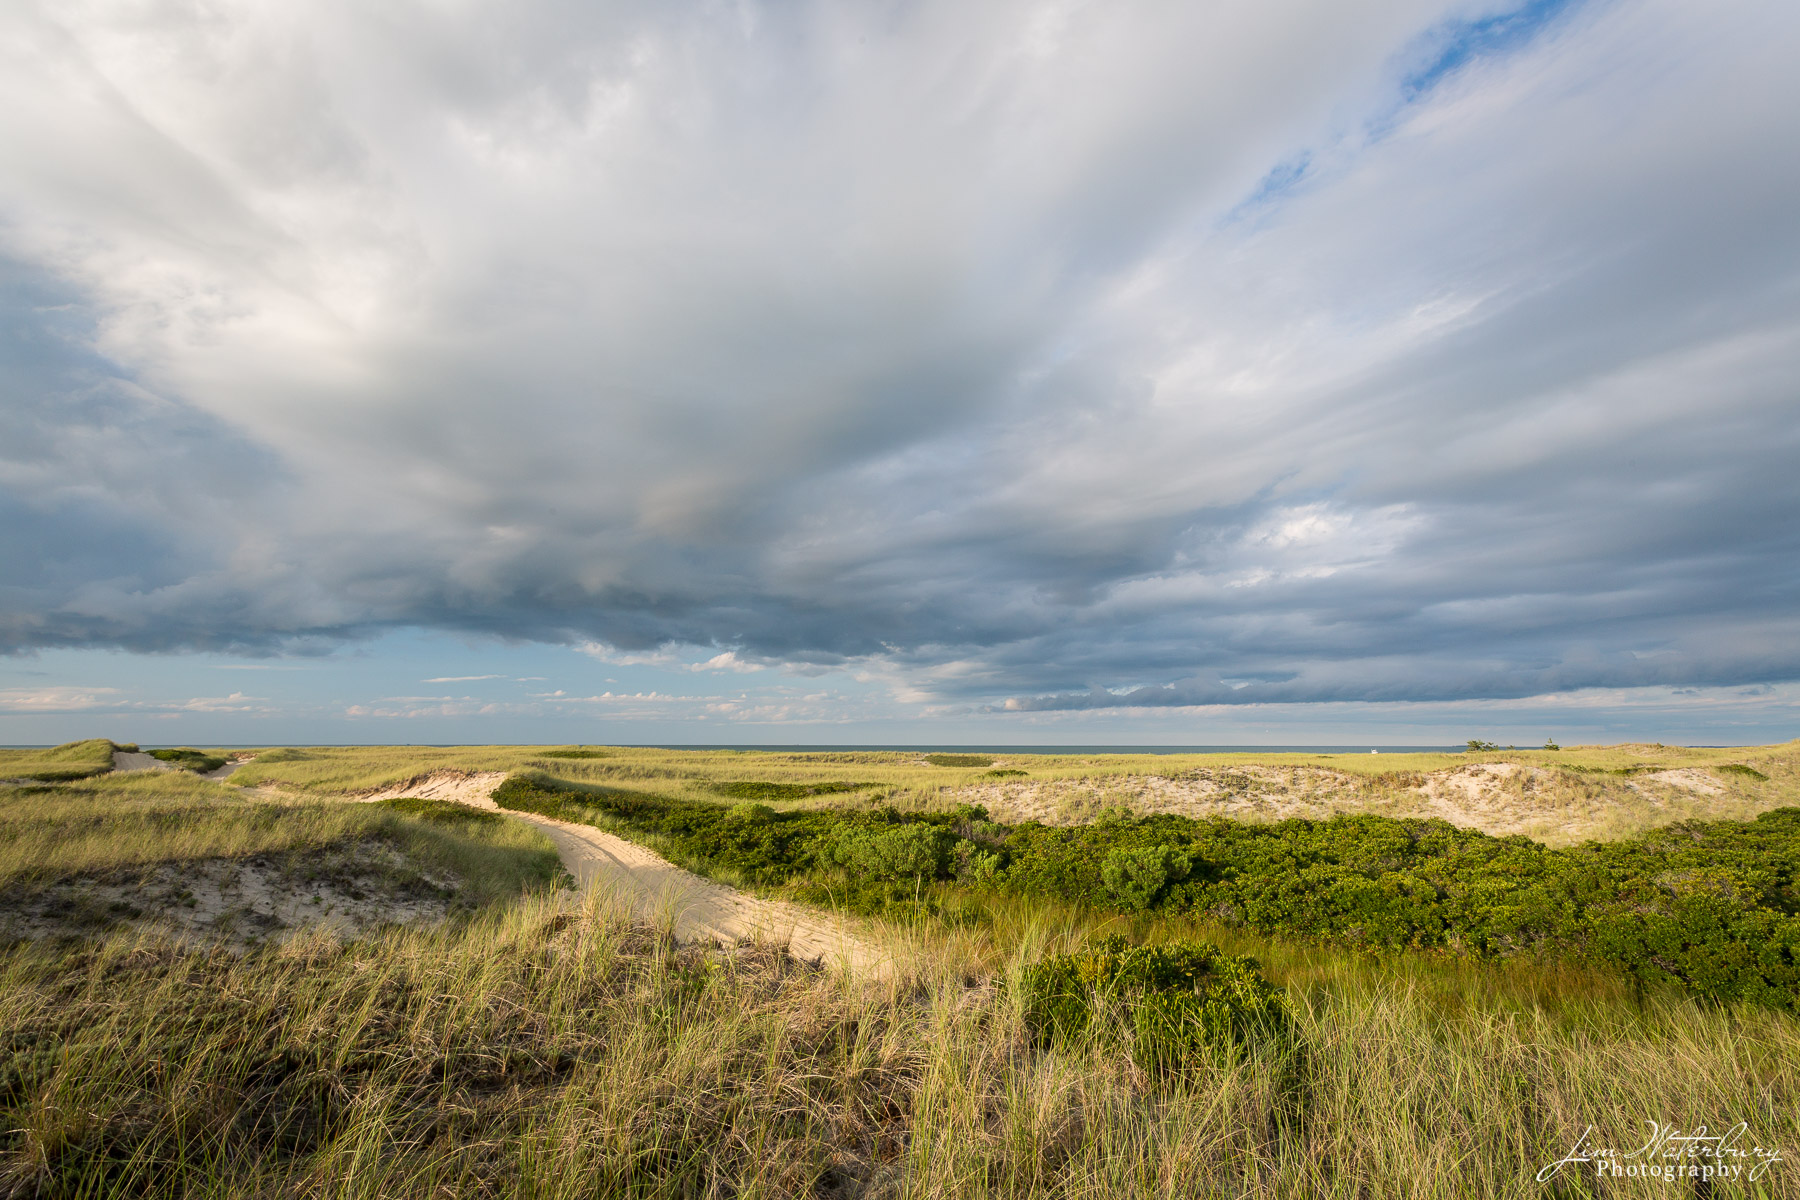 View of sand roads running through the dunes on Eel Point, Nantucket, with Nantucket Sound in the distance.